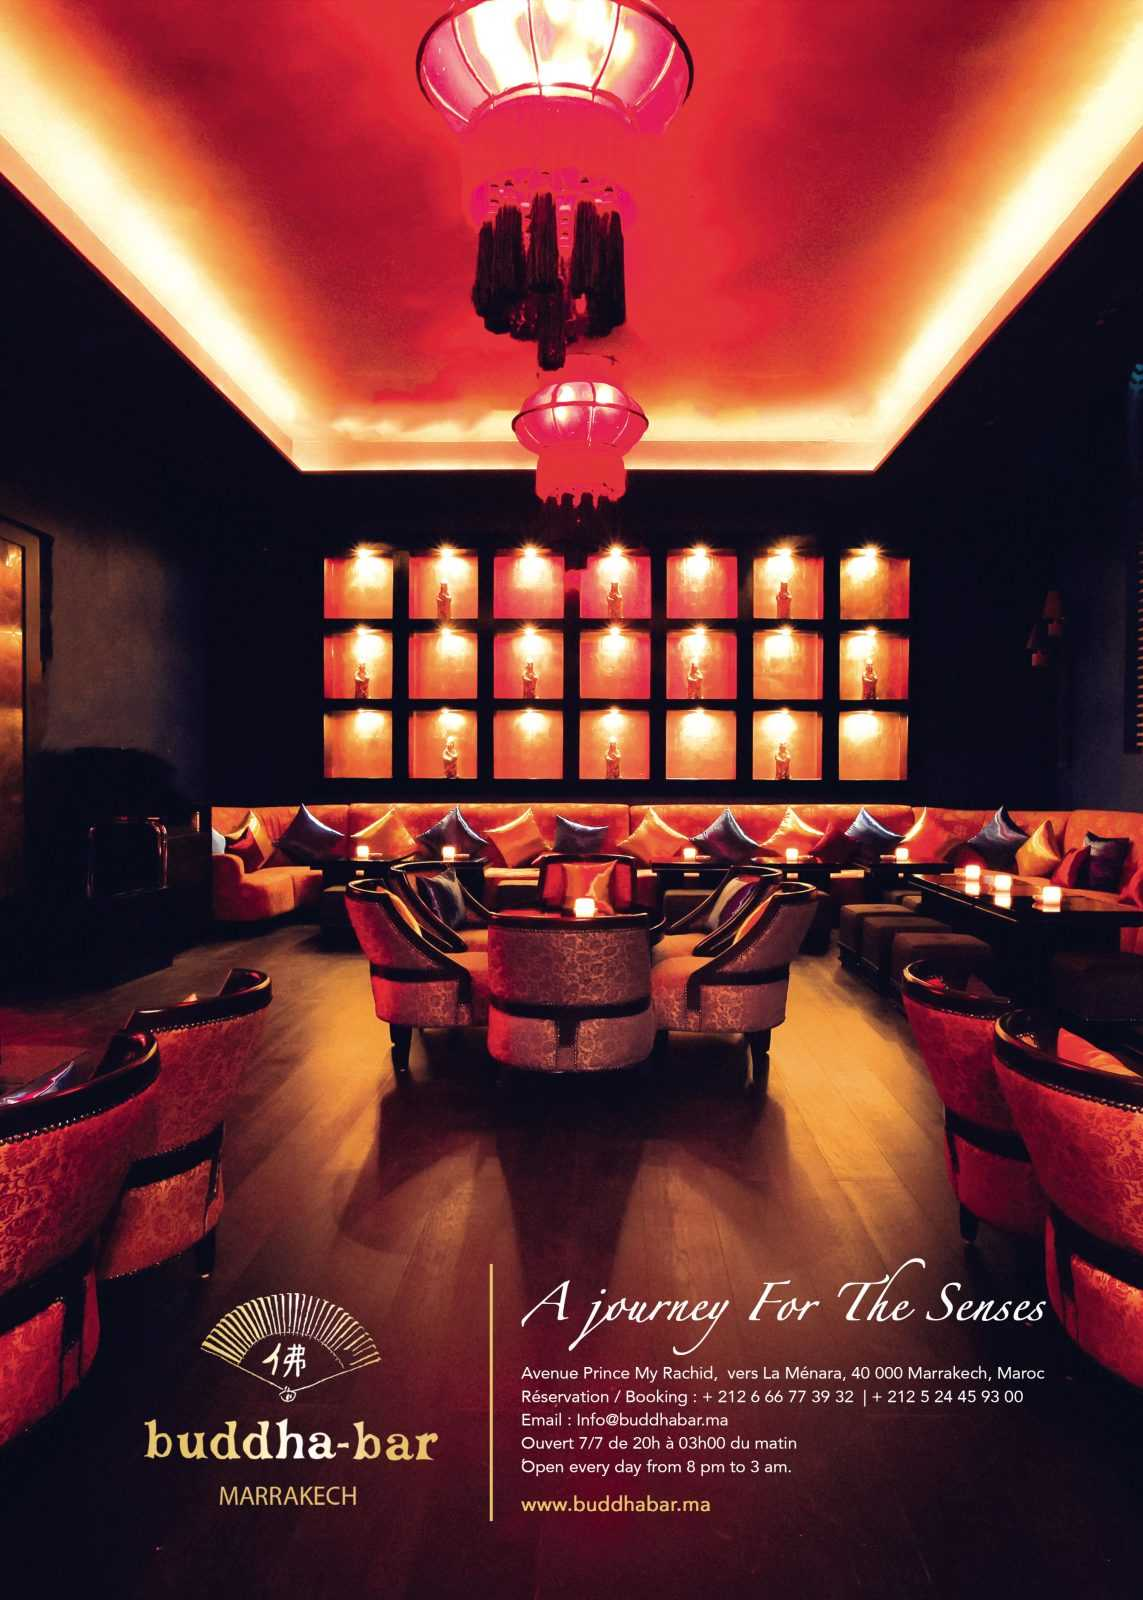 LE BUDDHA BAR: The place to be